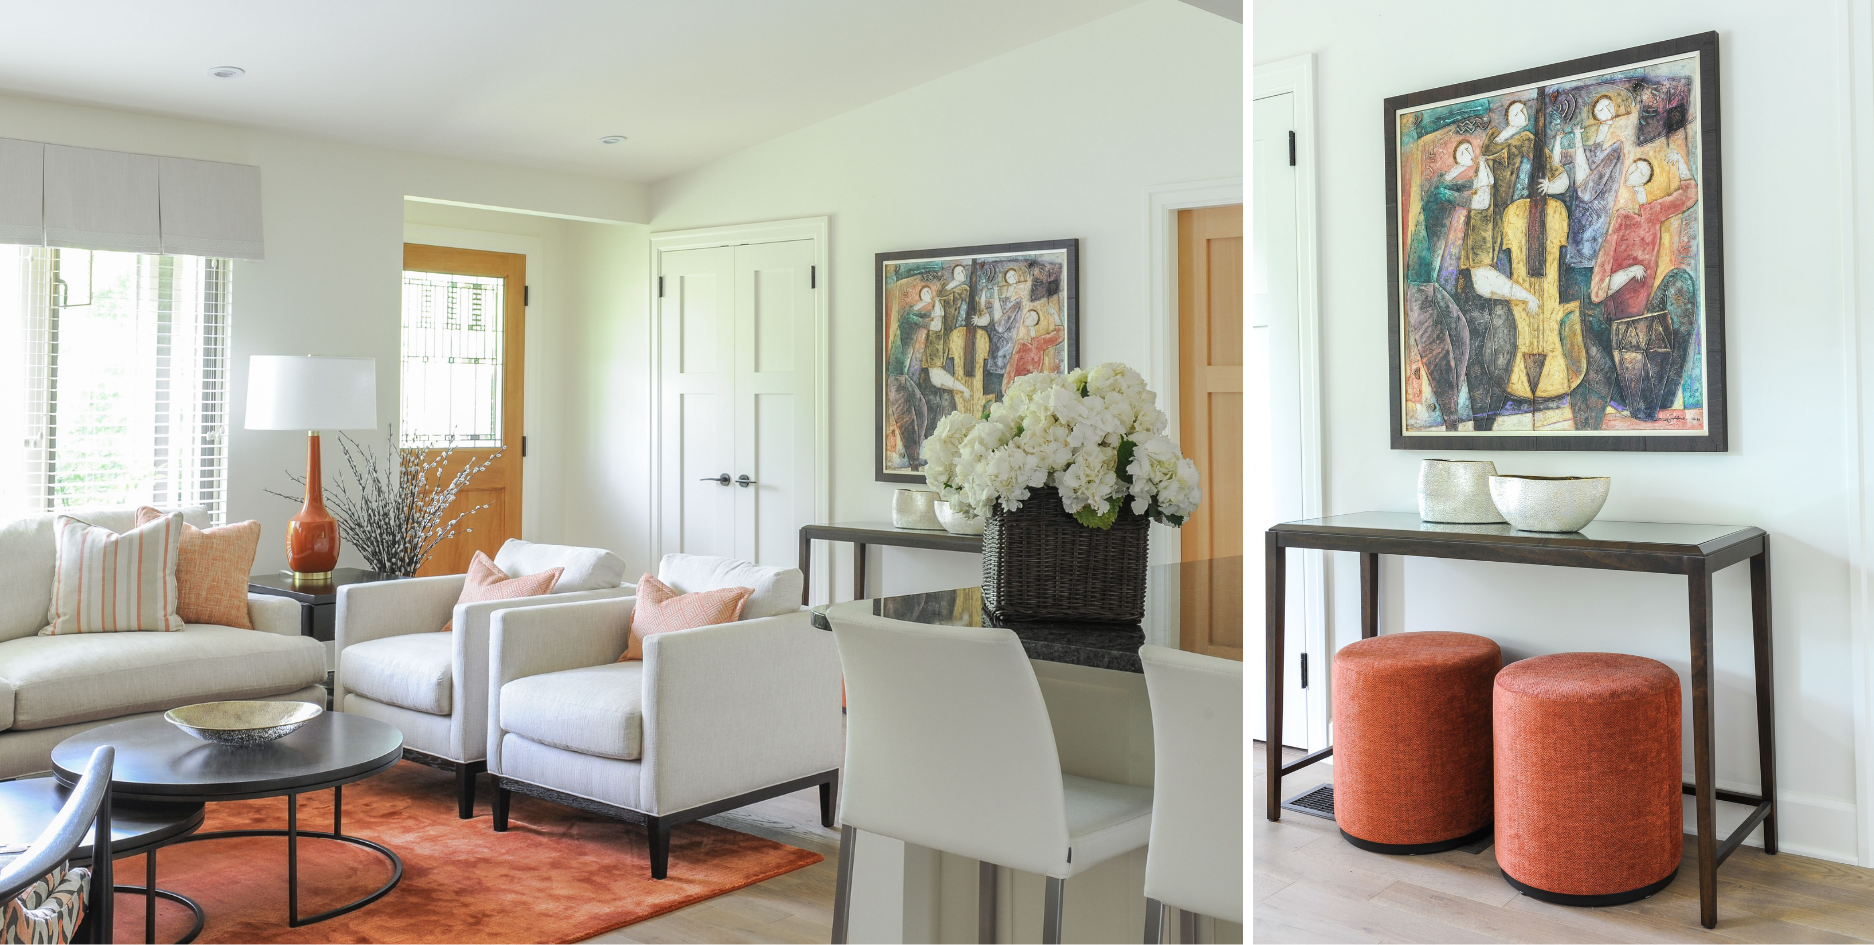 simply-home-decorating-north-vancouver-statement-pieces-interior-design-accent-rug-patterned-accent-chairs-matching-lamps